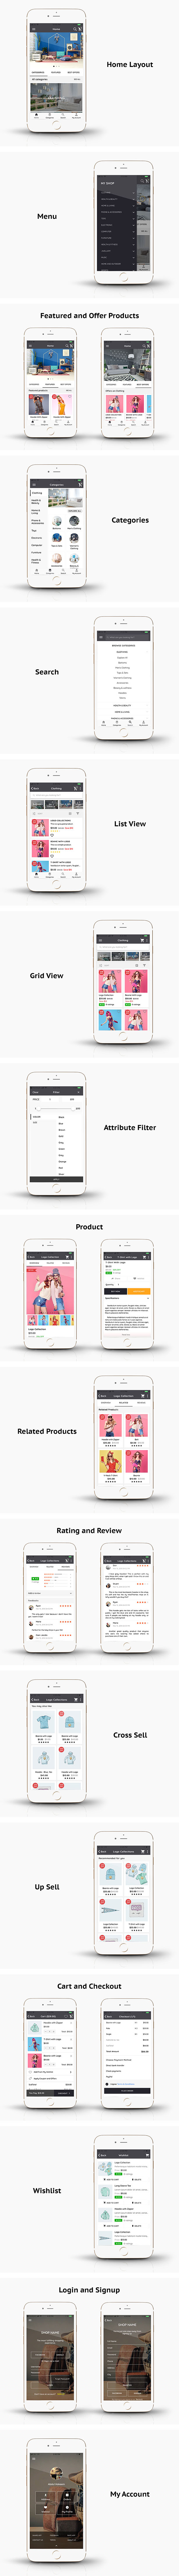 WooCommerce Mobile App ionic full application Lifestyle theme - 7